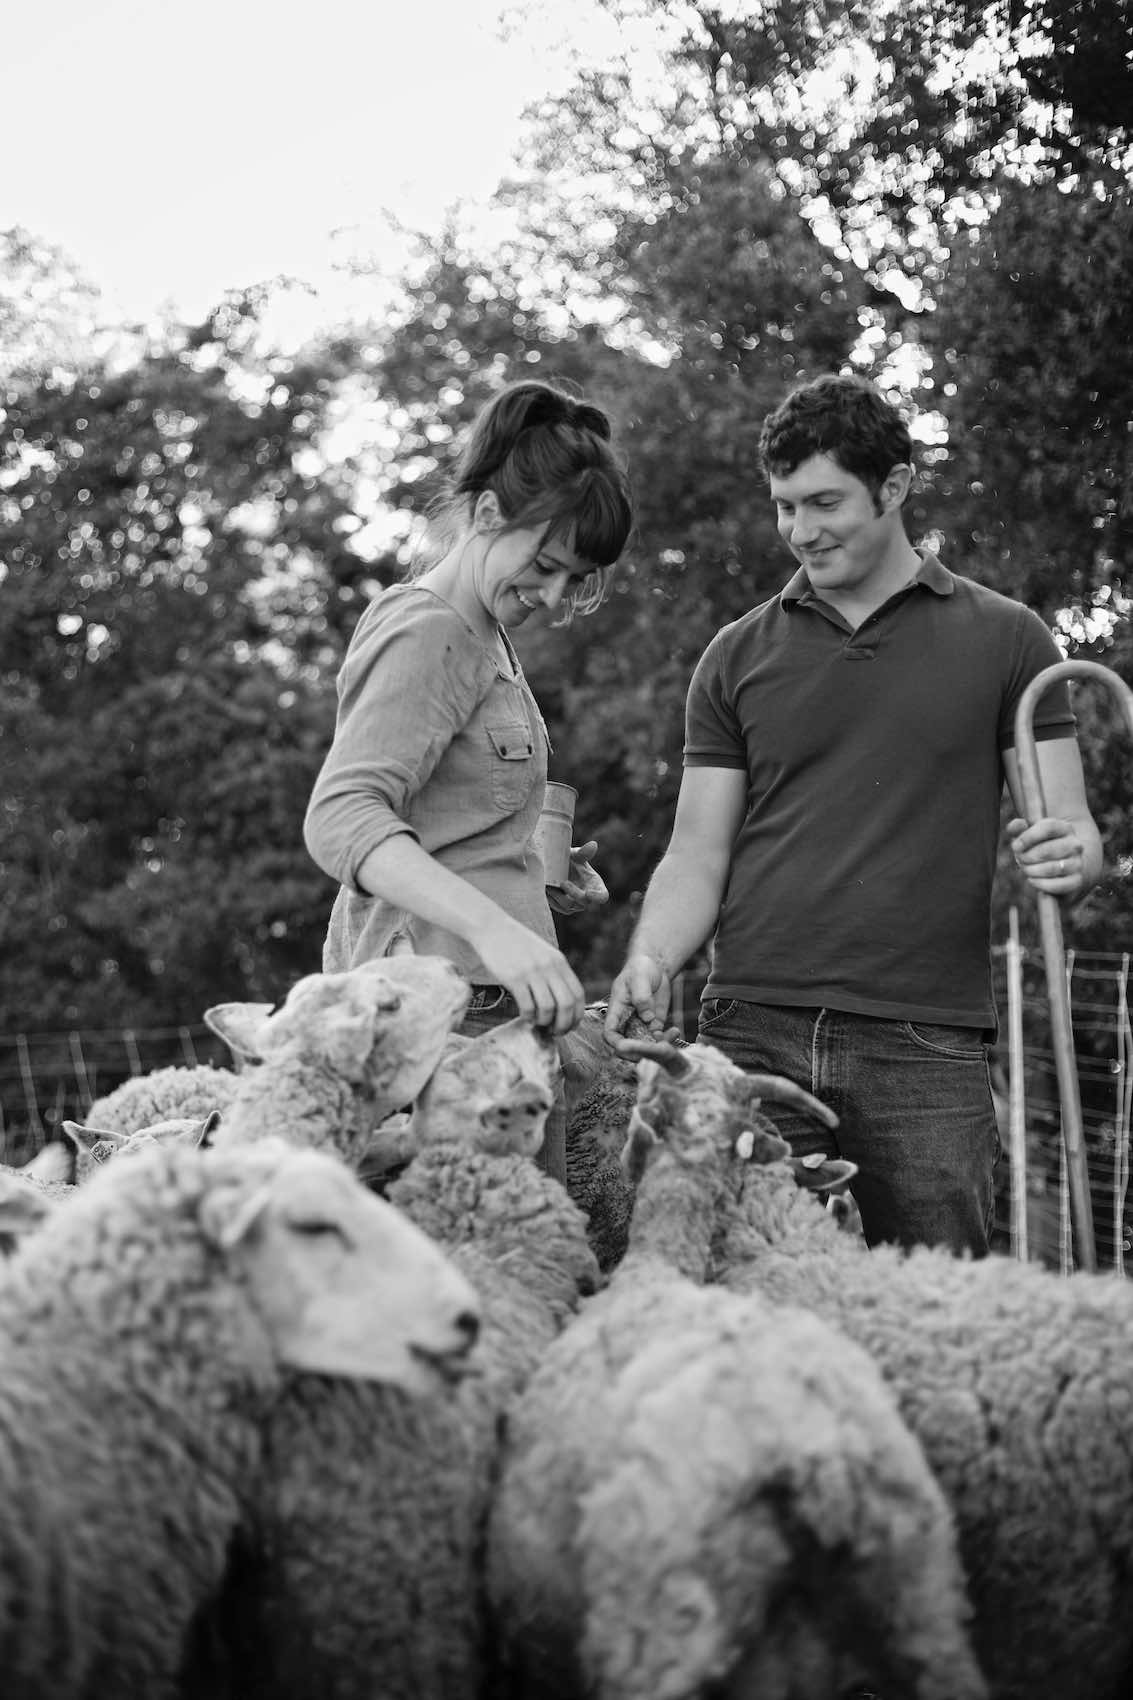 Jody Horton Photography - Farmers feeding sheep, shot in B&W.